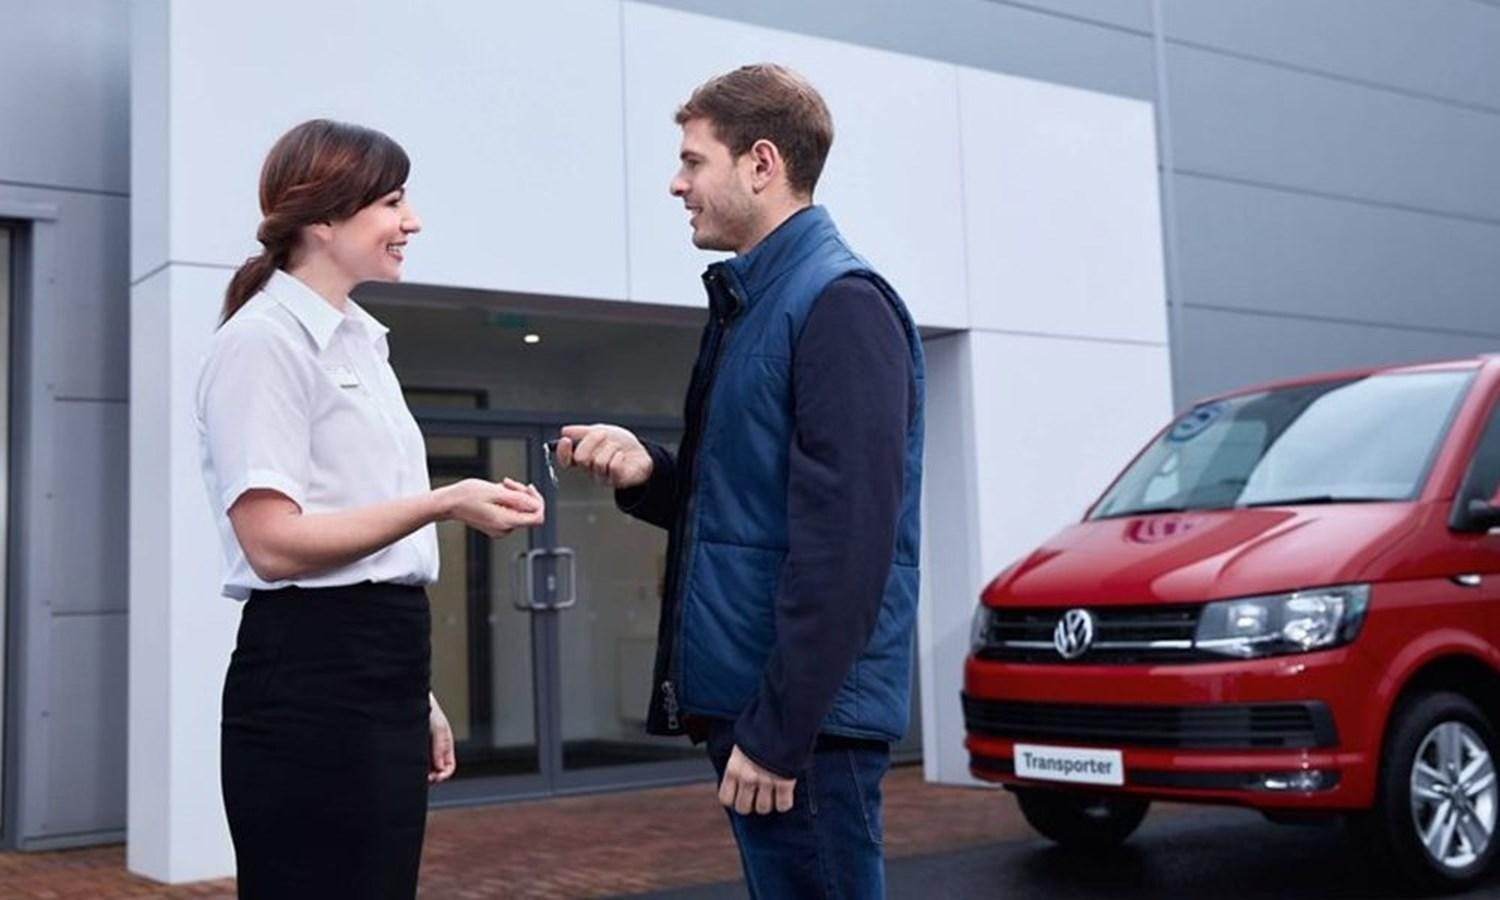 Man and woman exchanging car key in front of new red Volkswagen Transporter